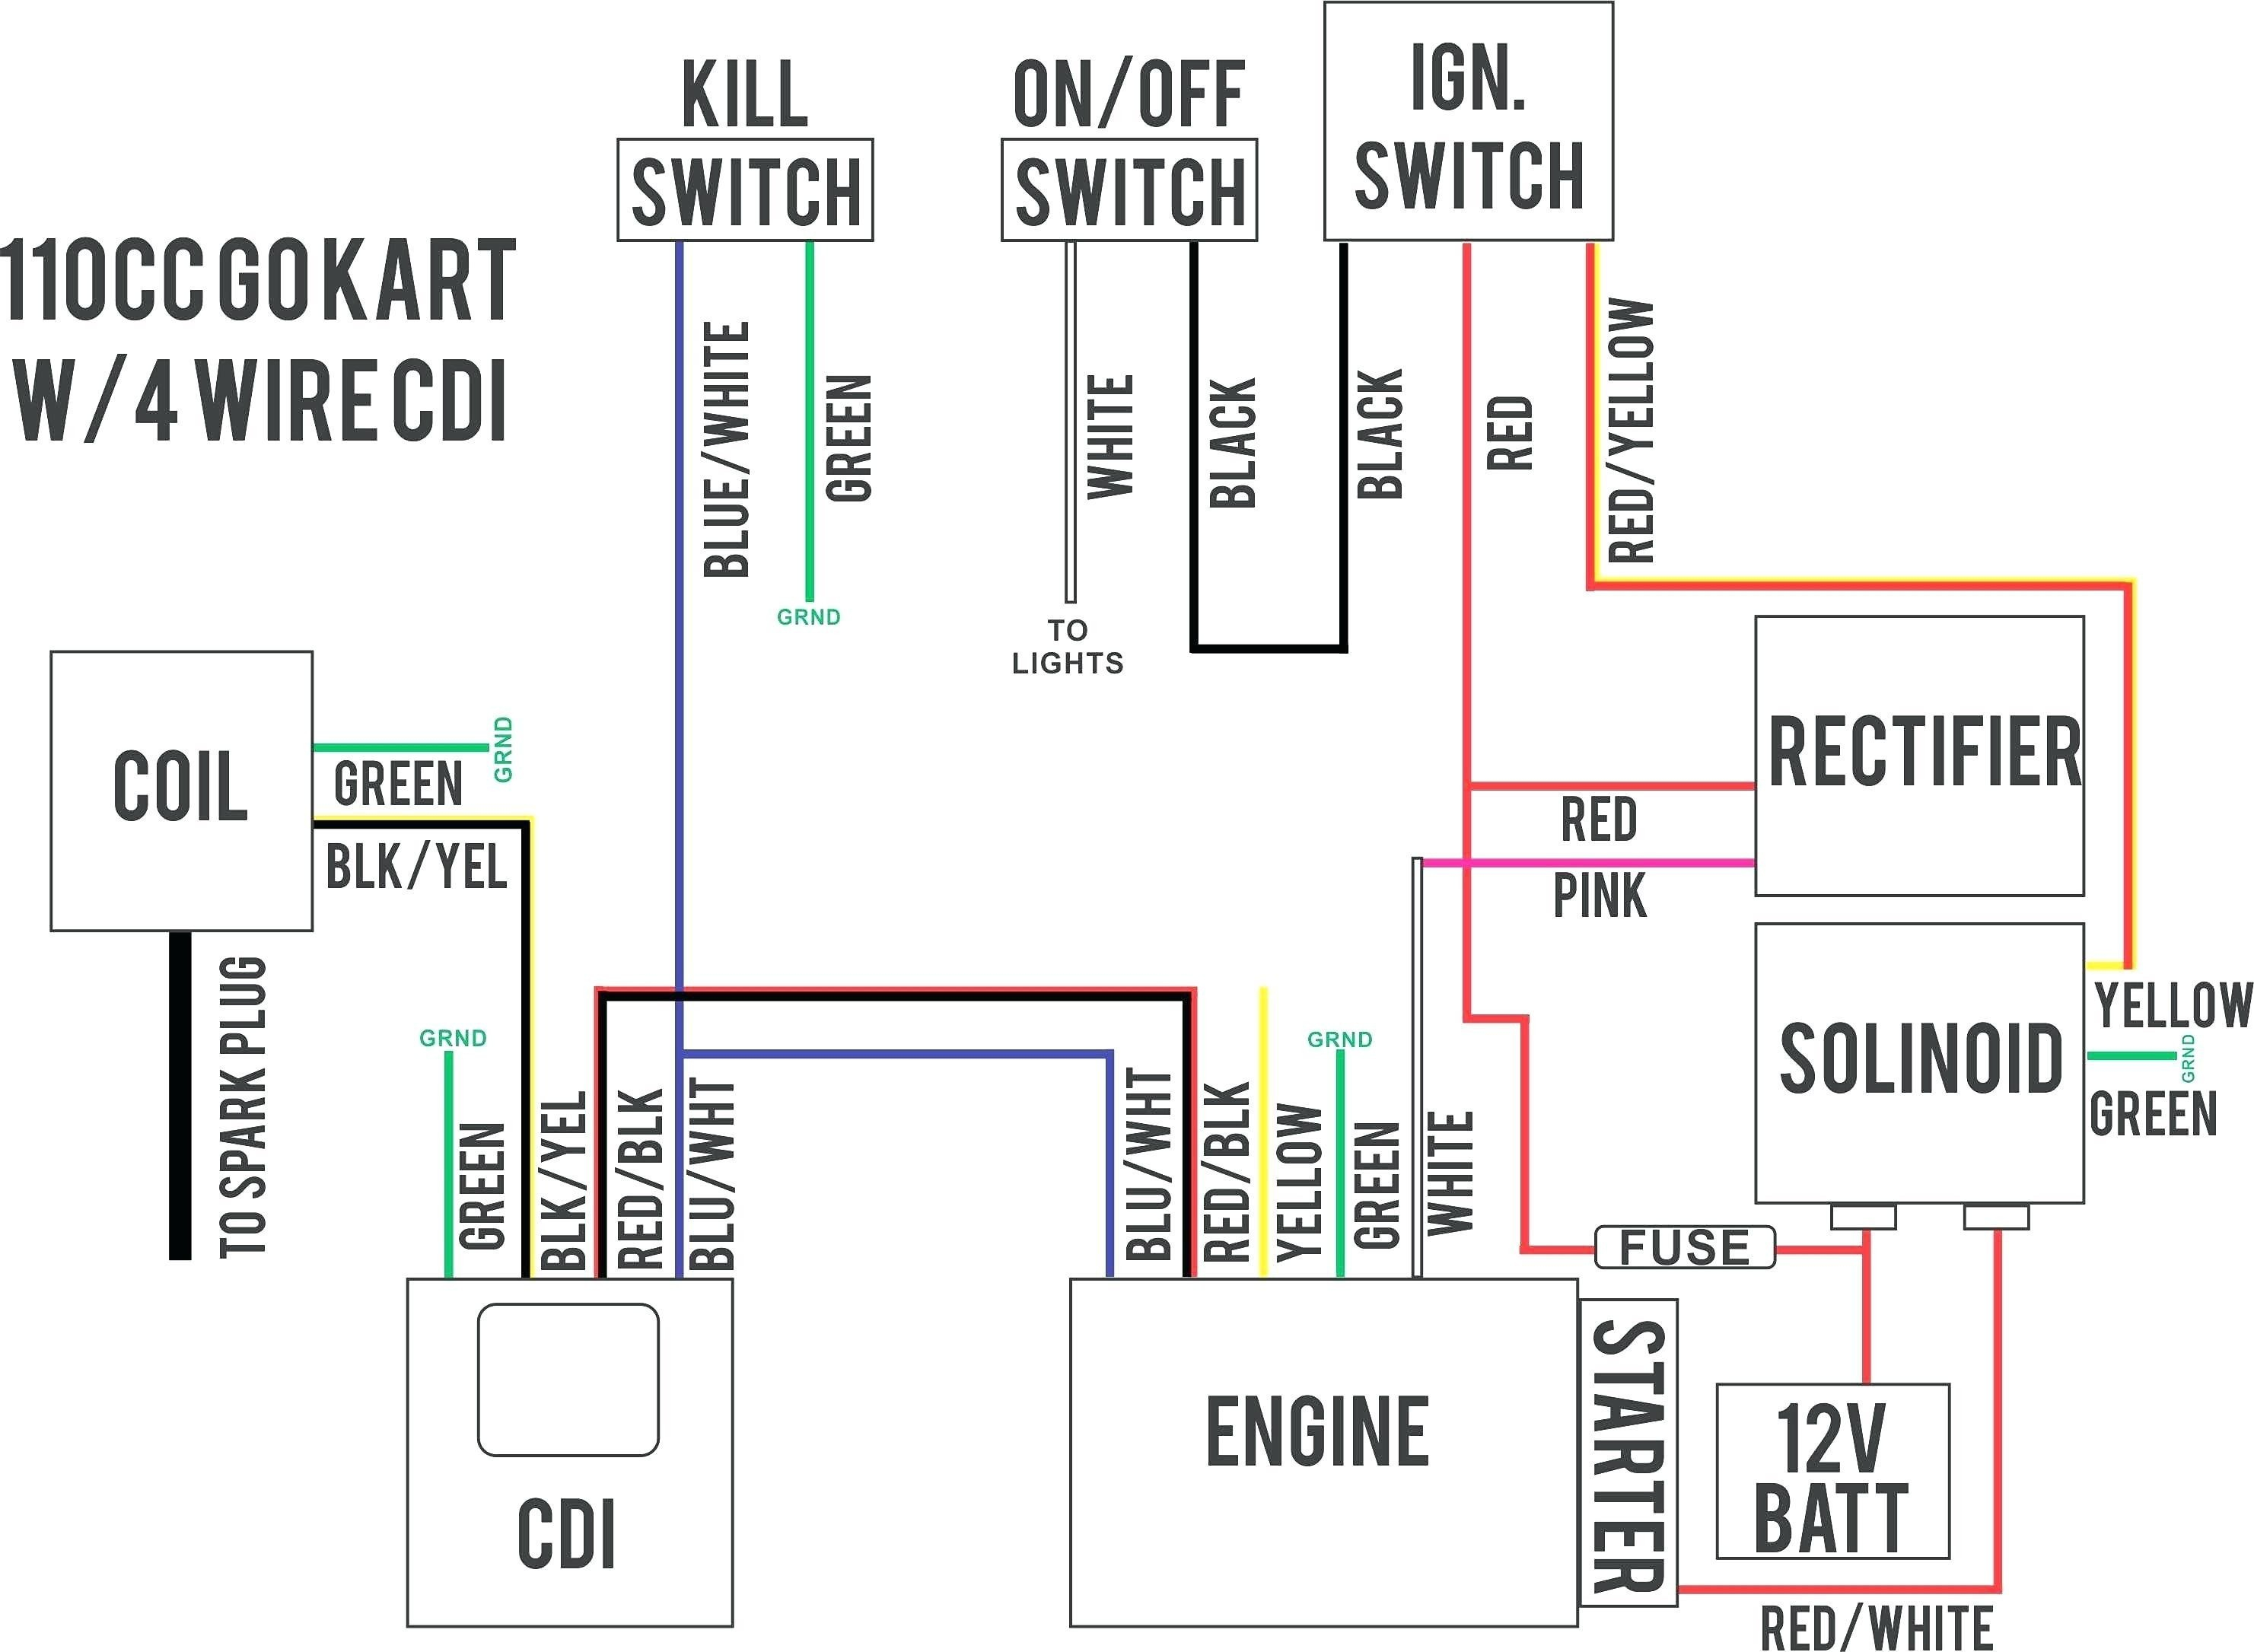 wiring diagram generac nexus smart switch wiring diagrams konsult  nexus smart switch wiring wiring diagram toolbox nexus smart switch wiring share circuit diagrams nexus smart